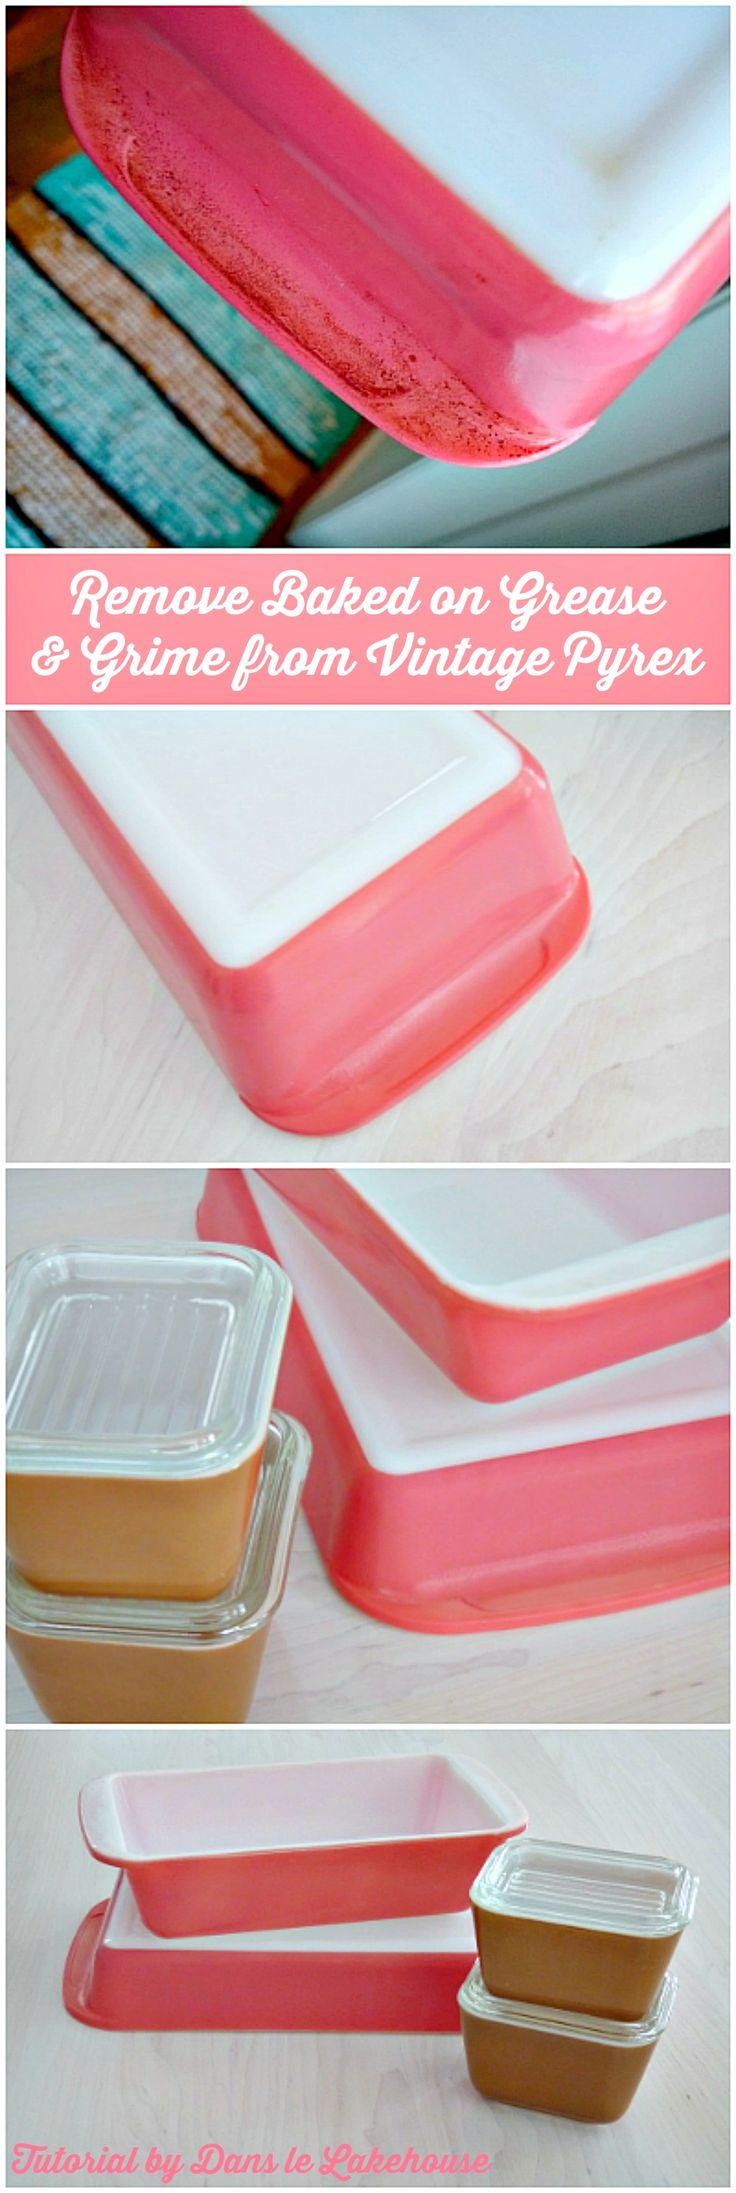 How to Clean Black Marks   Baked on Grease from Vintage Pyrex, Plus Tips for Bringing Back Shine to Dishwasher Dead Vintage Pyrex